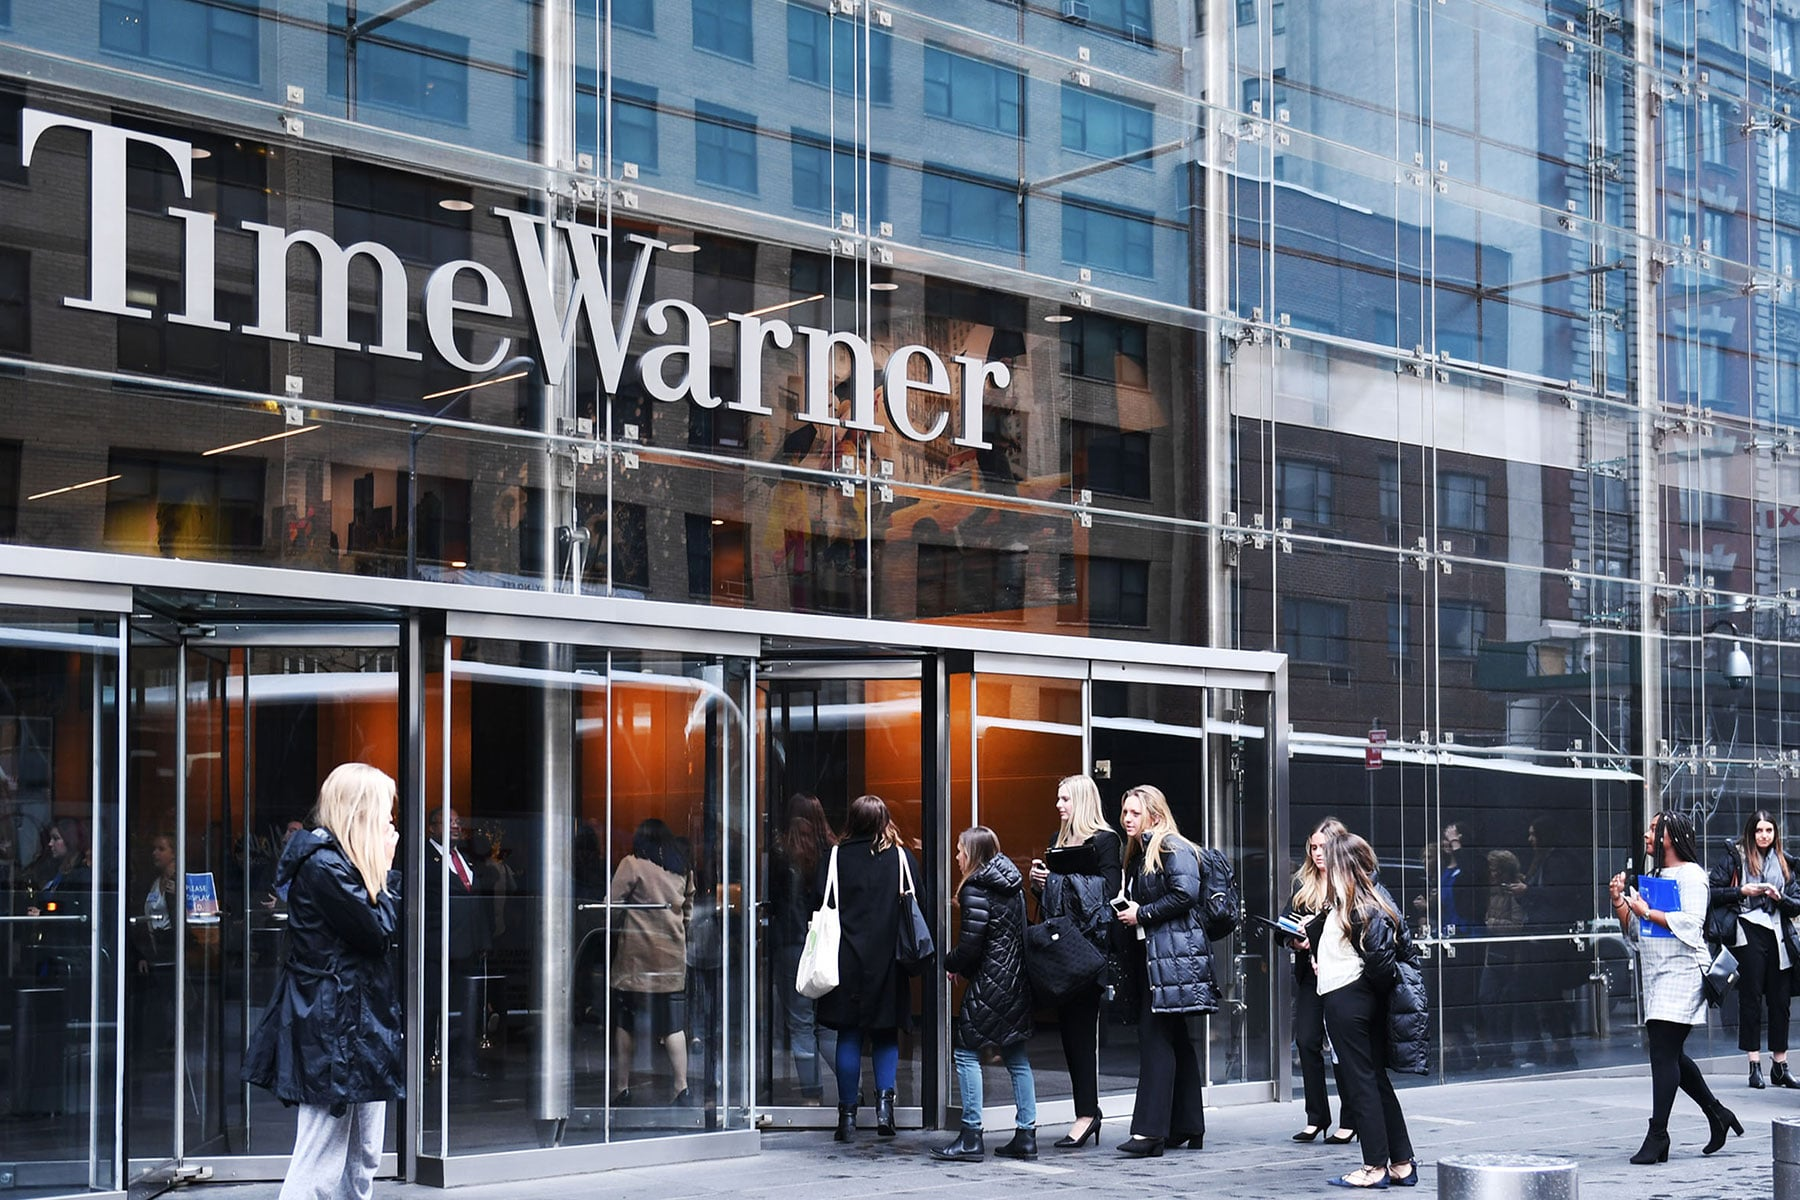 A number of young women dressed in winter clothes, file into an office building with the Time Warner logo above the door